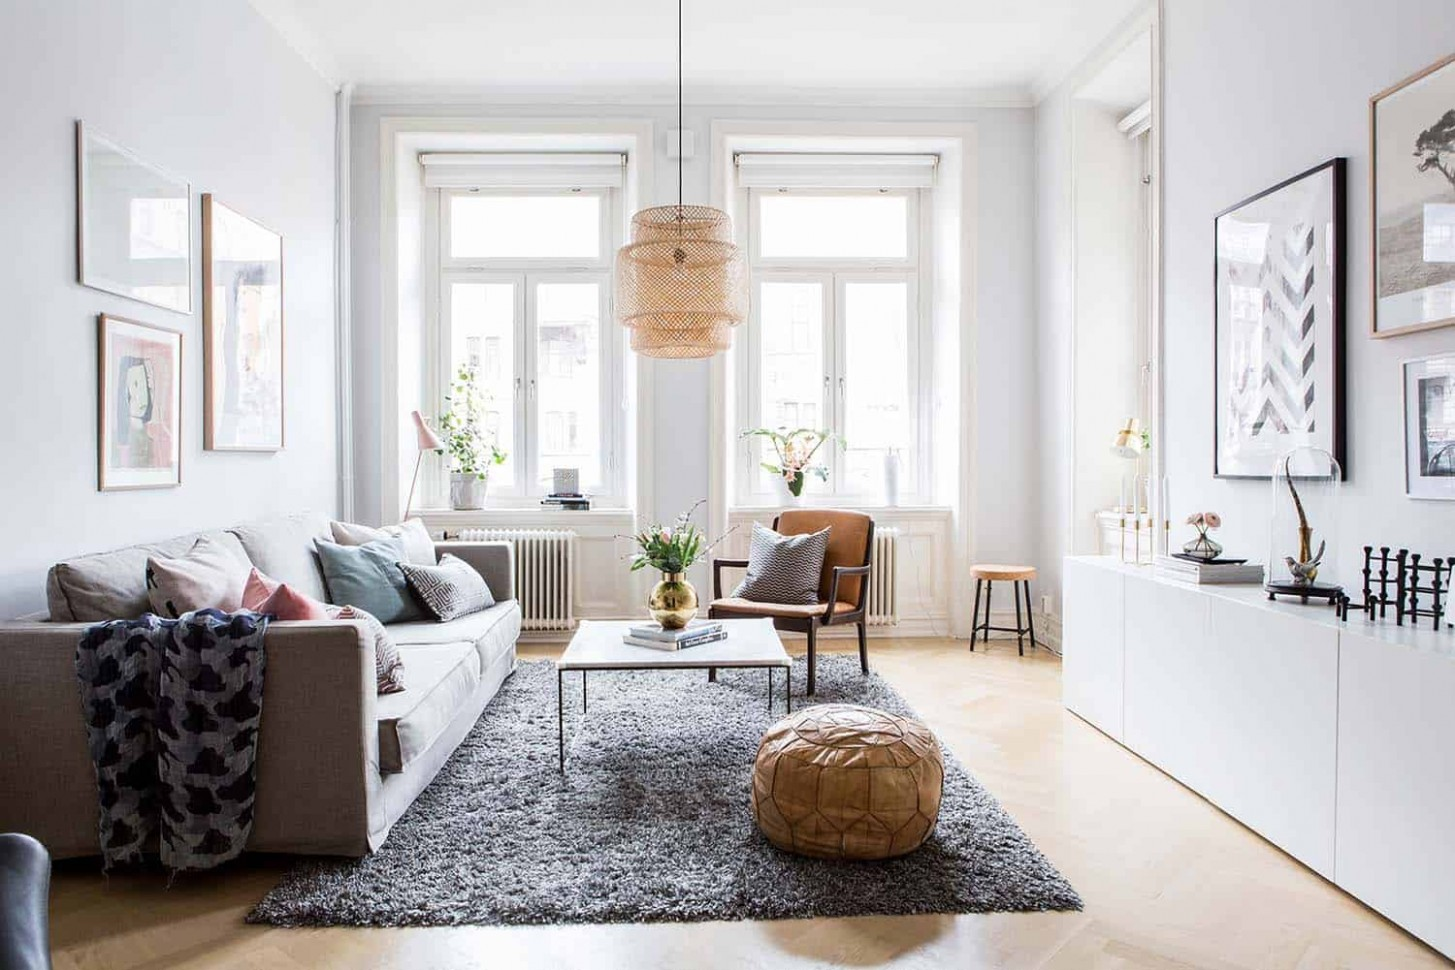 Bright and airy two-bedroom Scandinavian apartment interior - Scandinavian Apartment Decor Ideas